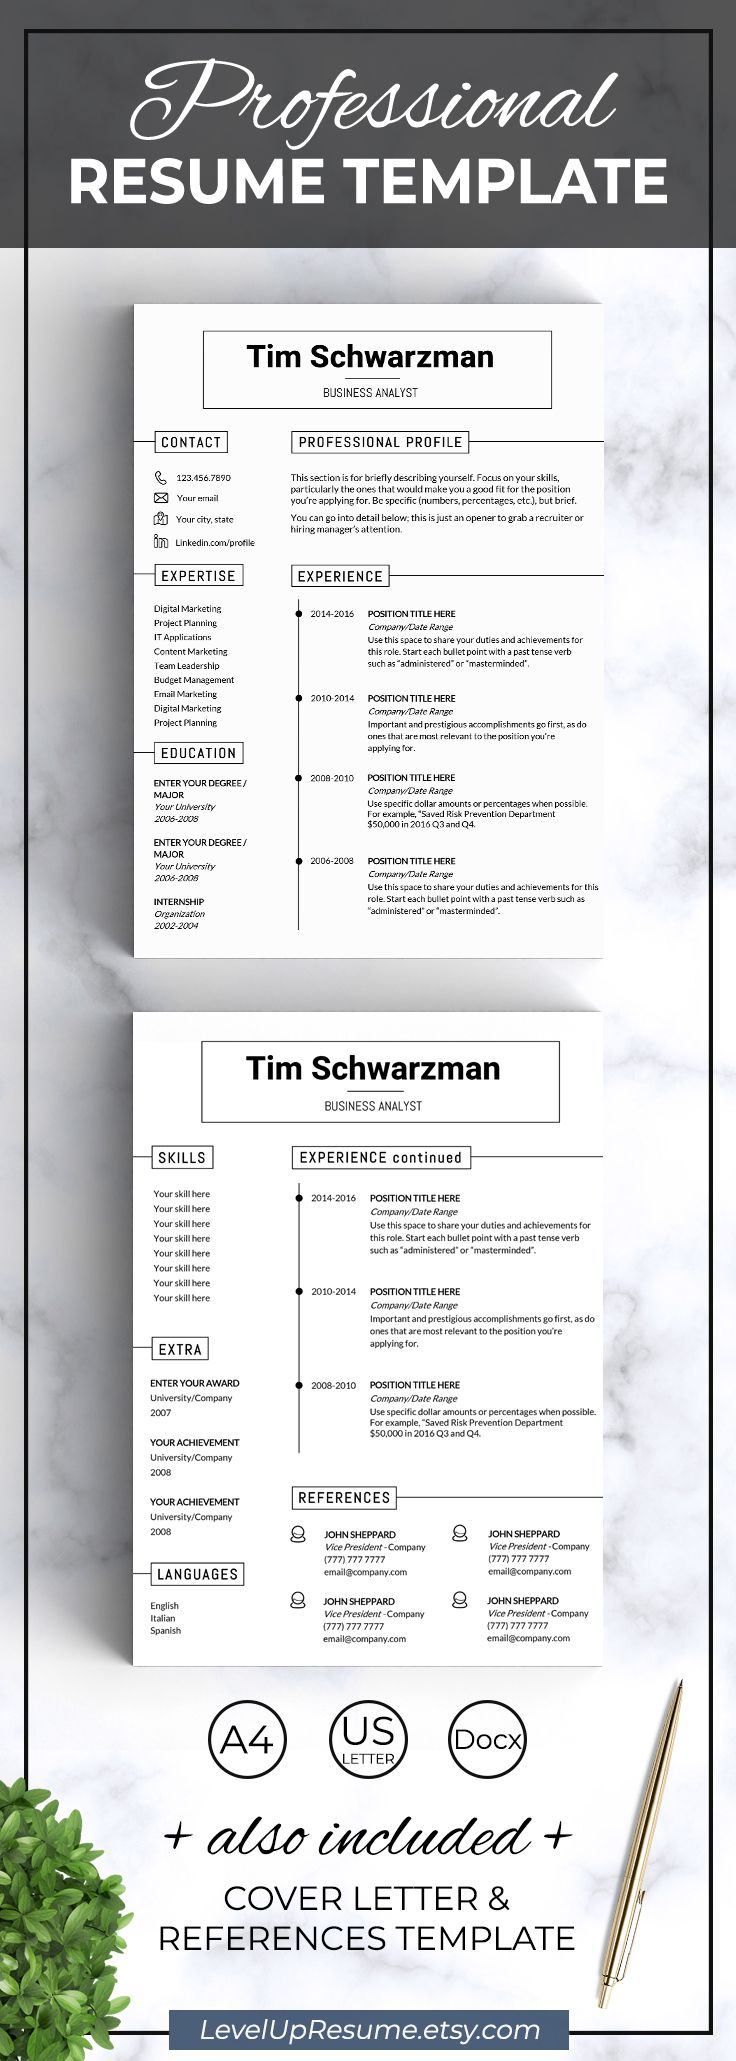 Minimalist Resume Template Clean And Minimalist Resume Templateprofessional Resume Design .